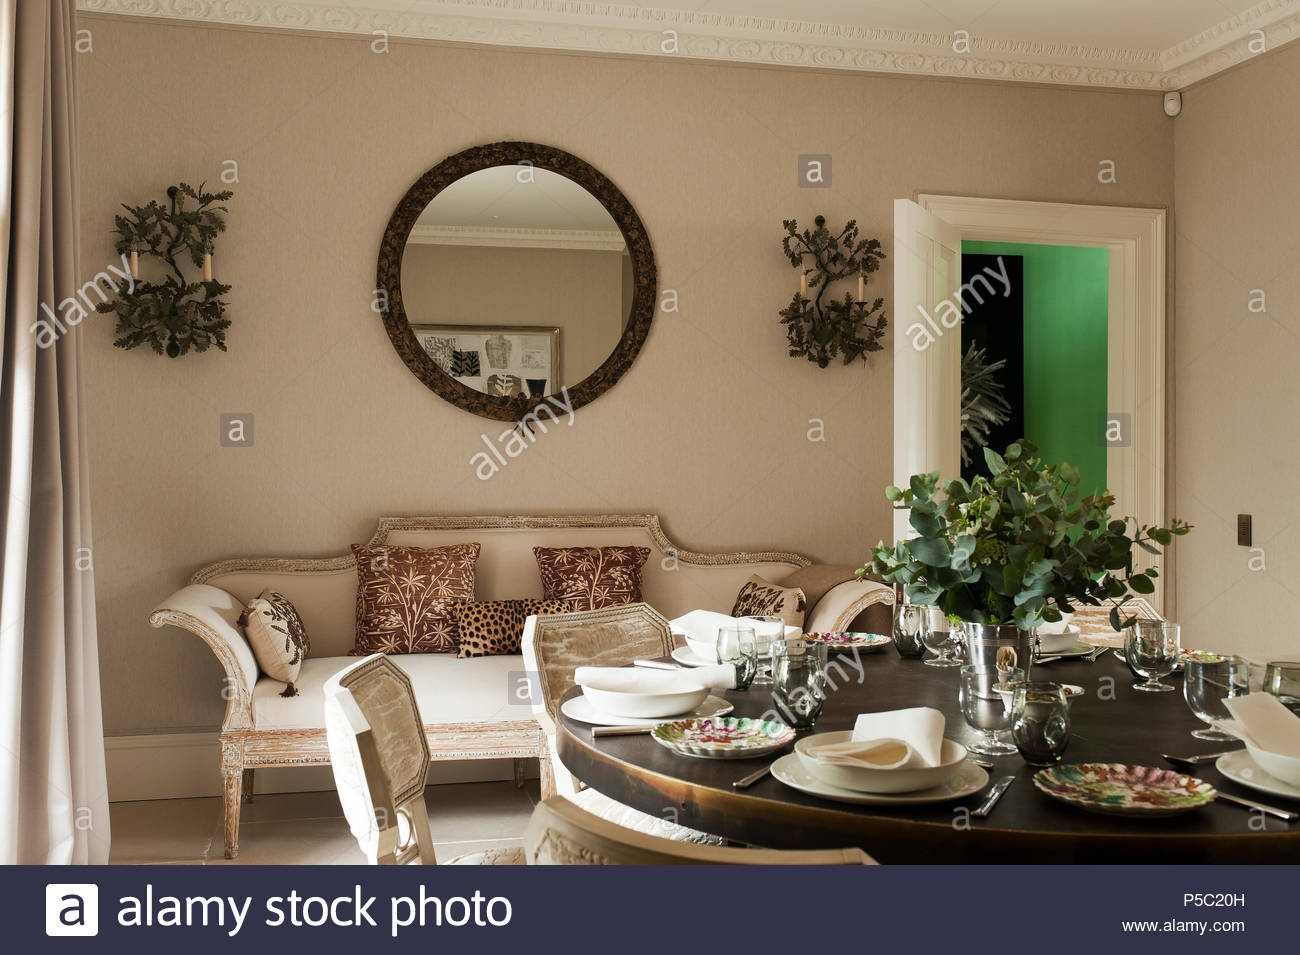 Country Style Kitchen With Set Table   Stock Image